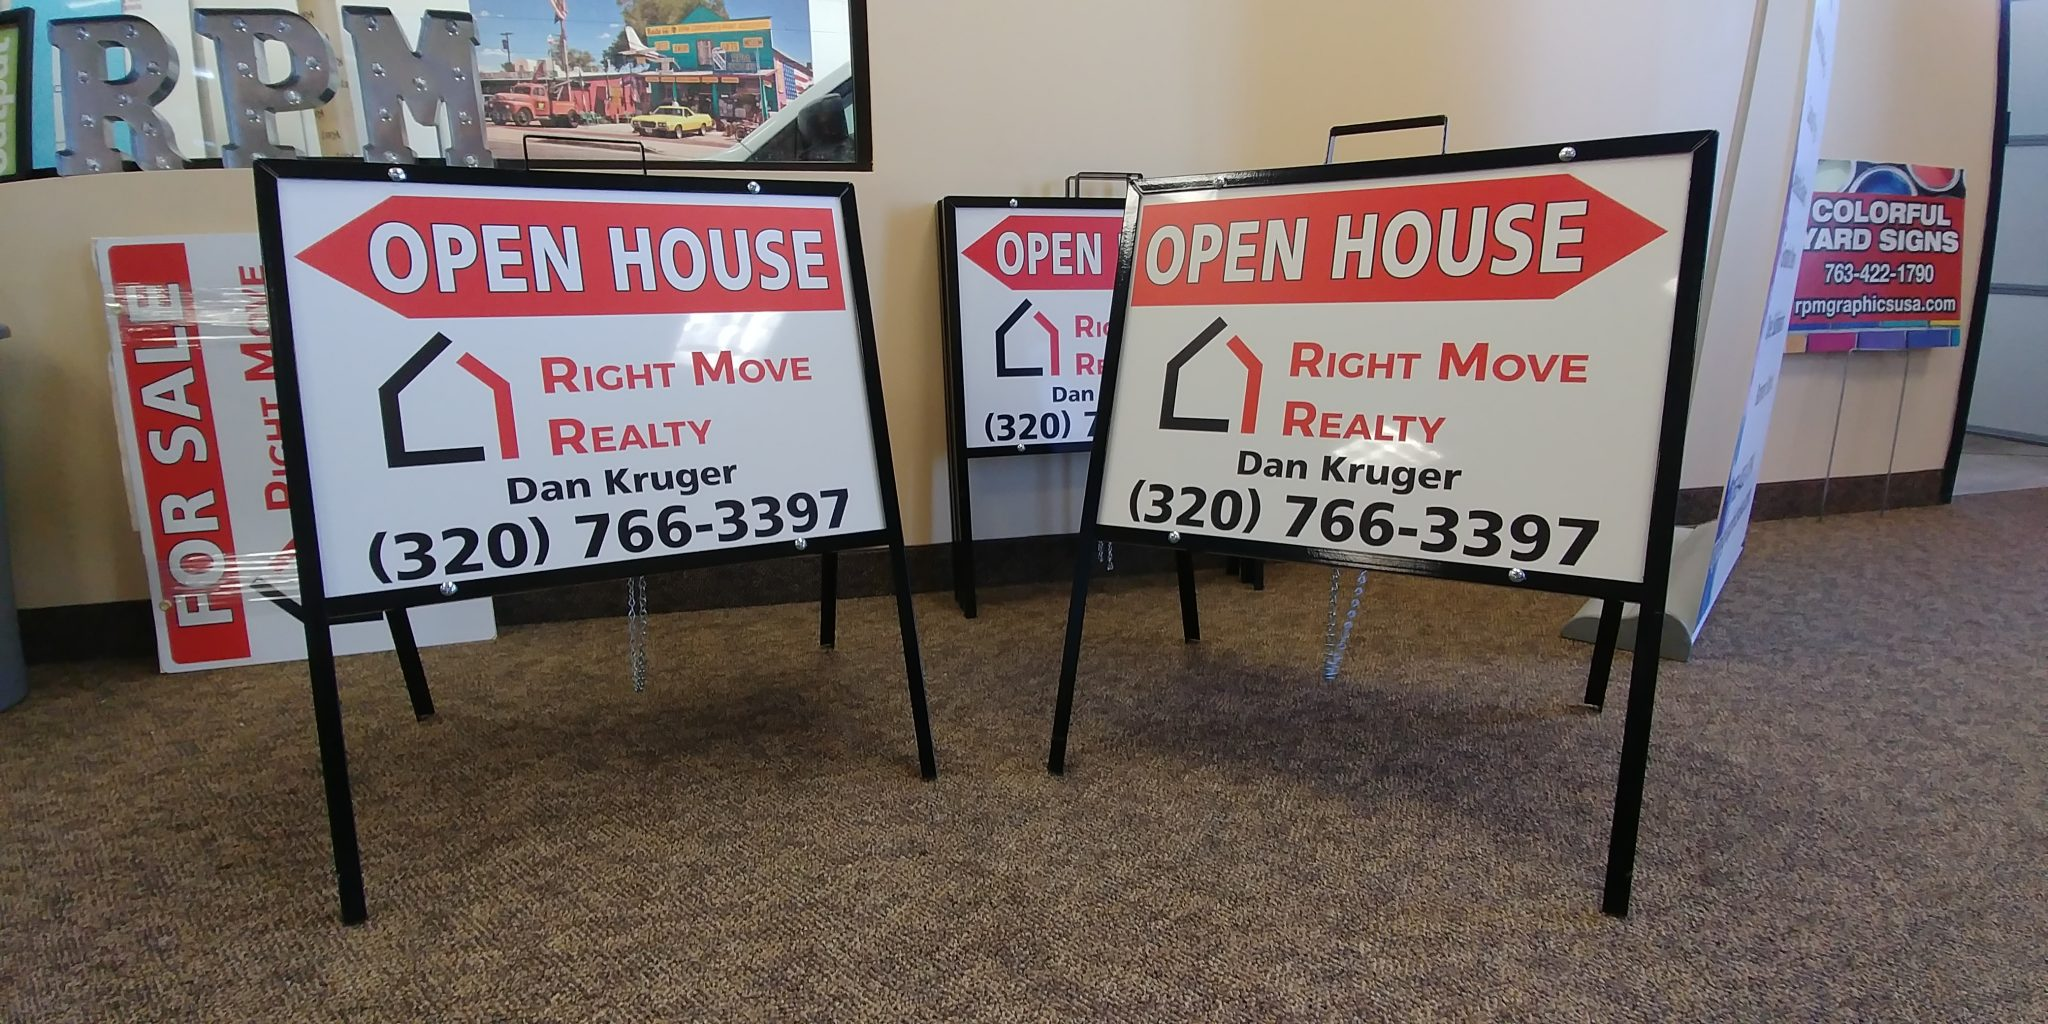 Real Estate A Frame Open House Signs - RPM Graphics